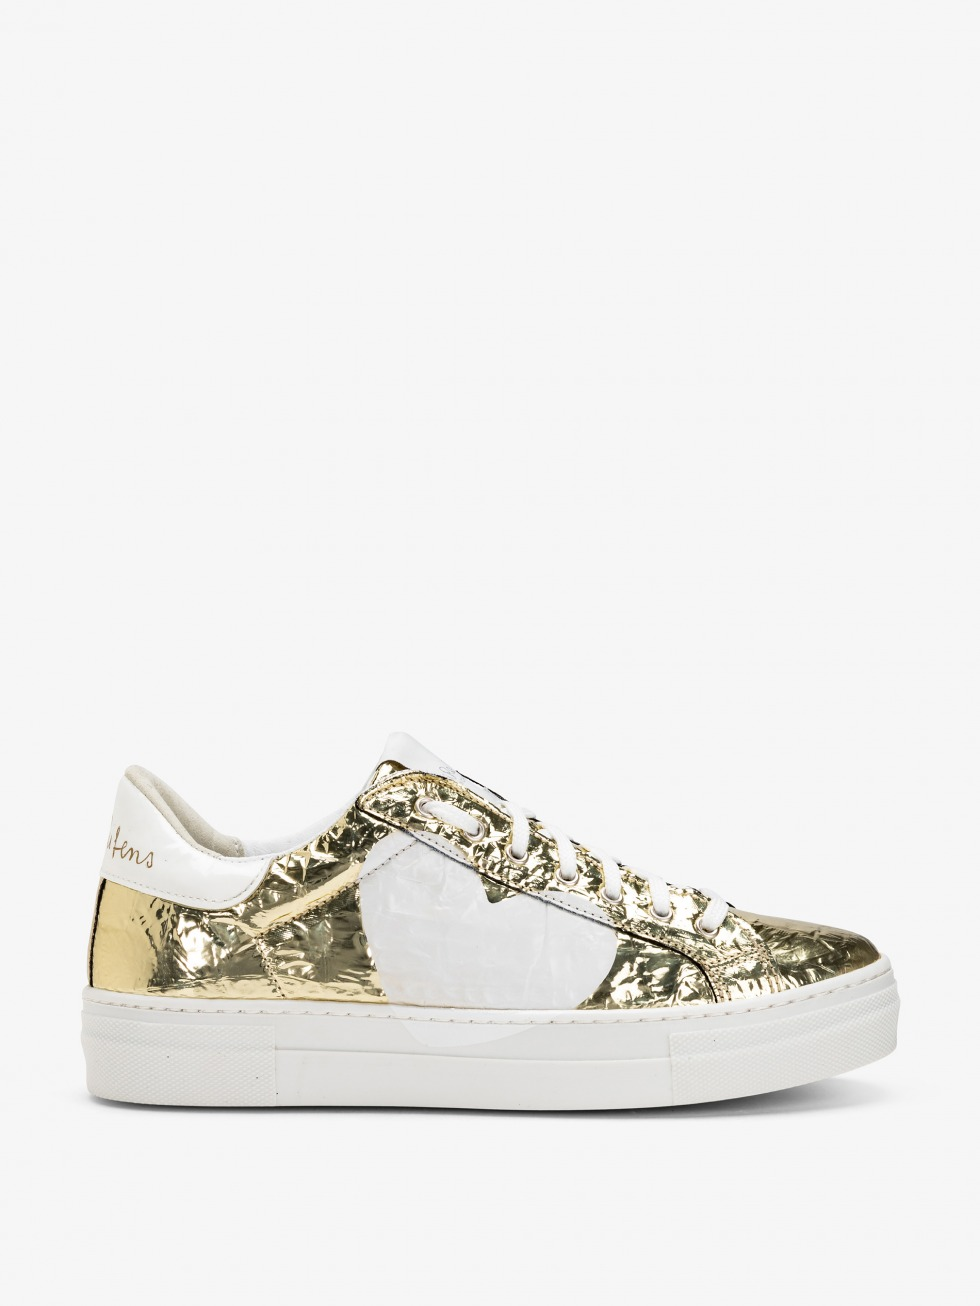 Sneakers Martini Shuttle Gold - Cuore